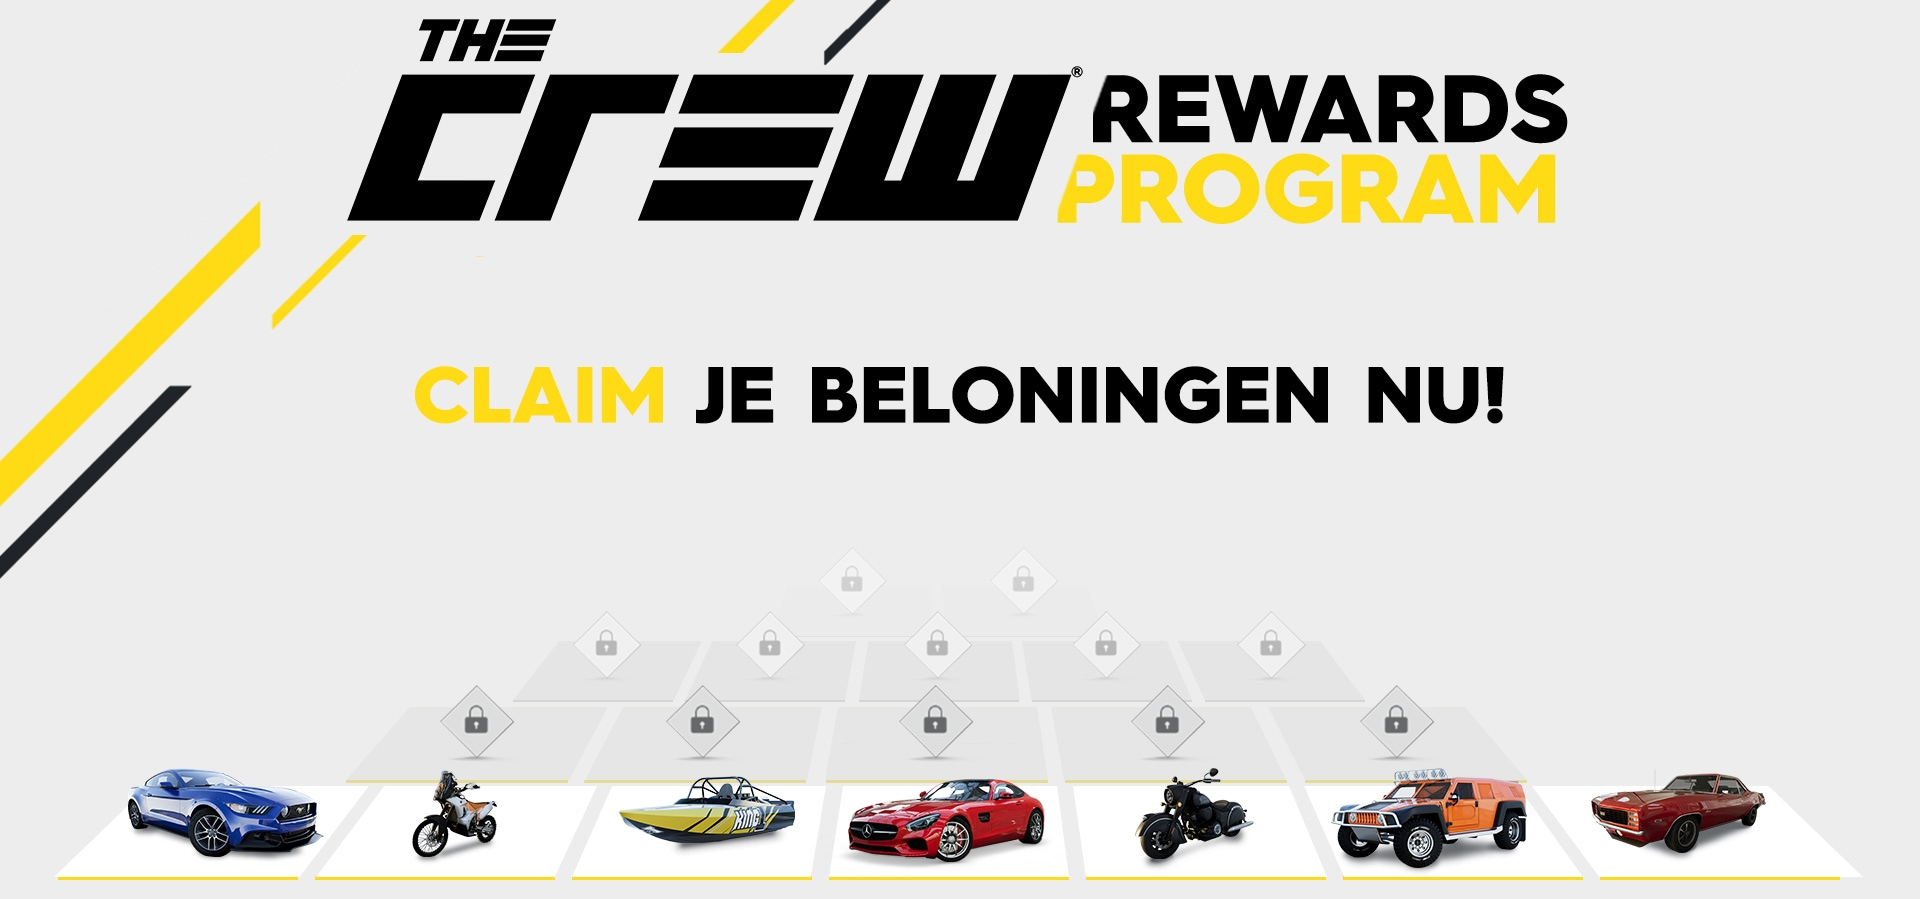 Rewards Program